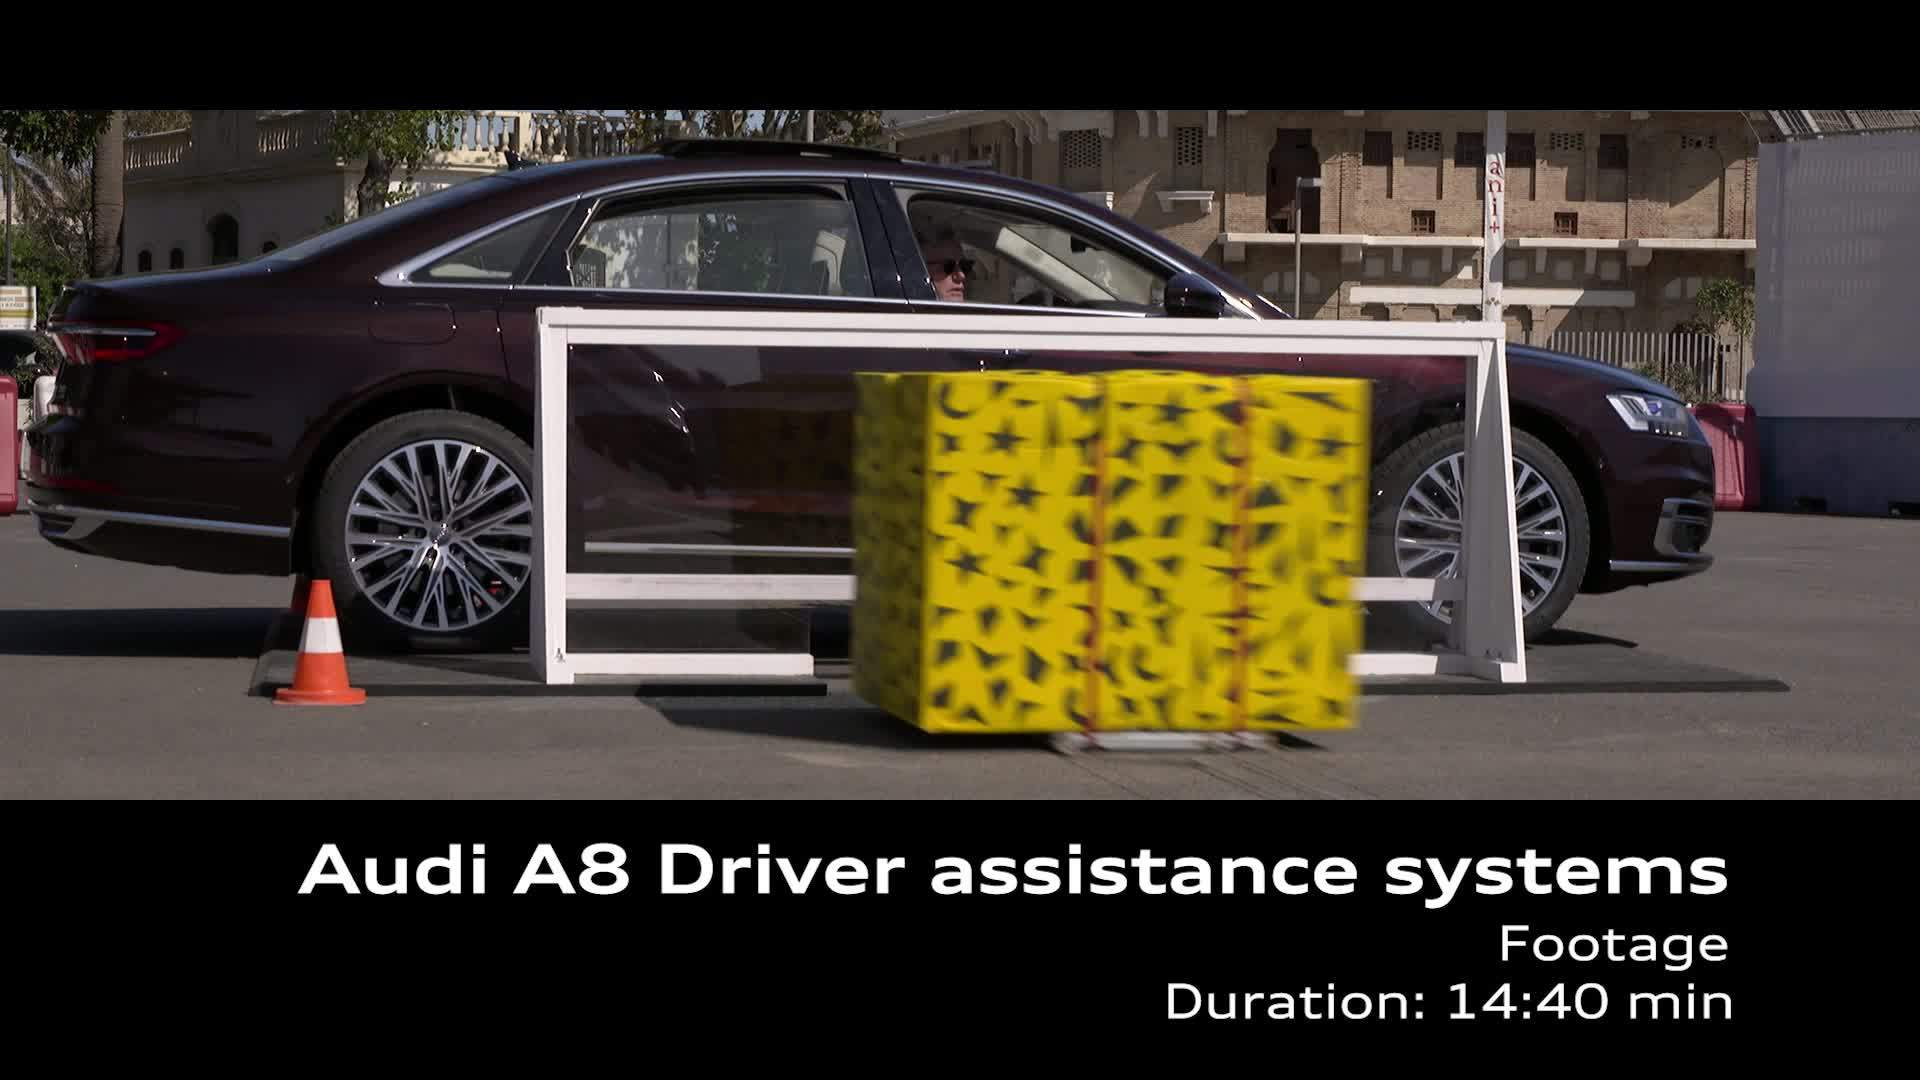 Footage Audi A8 driver assistance systems